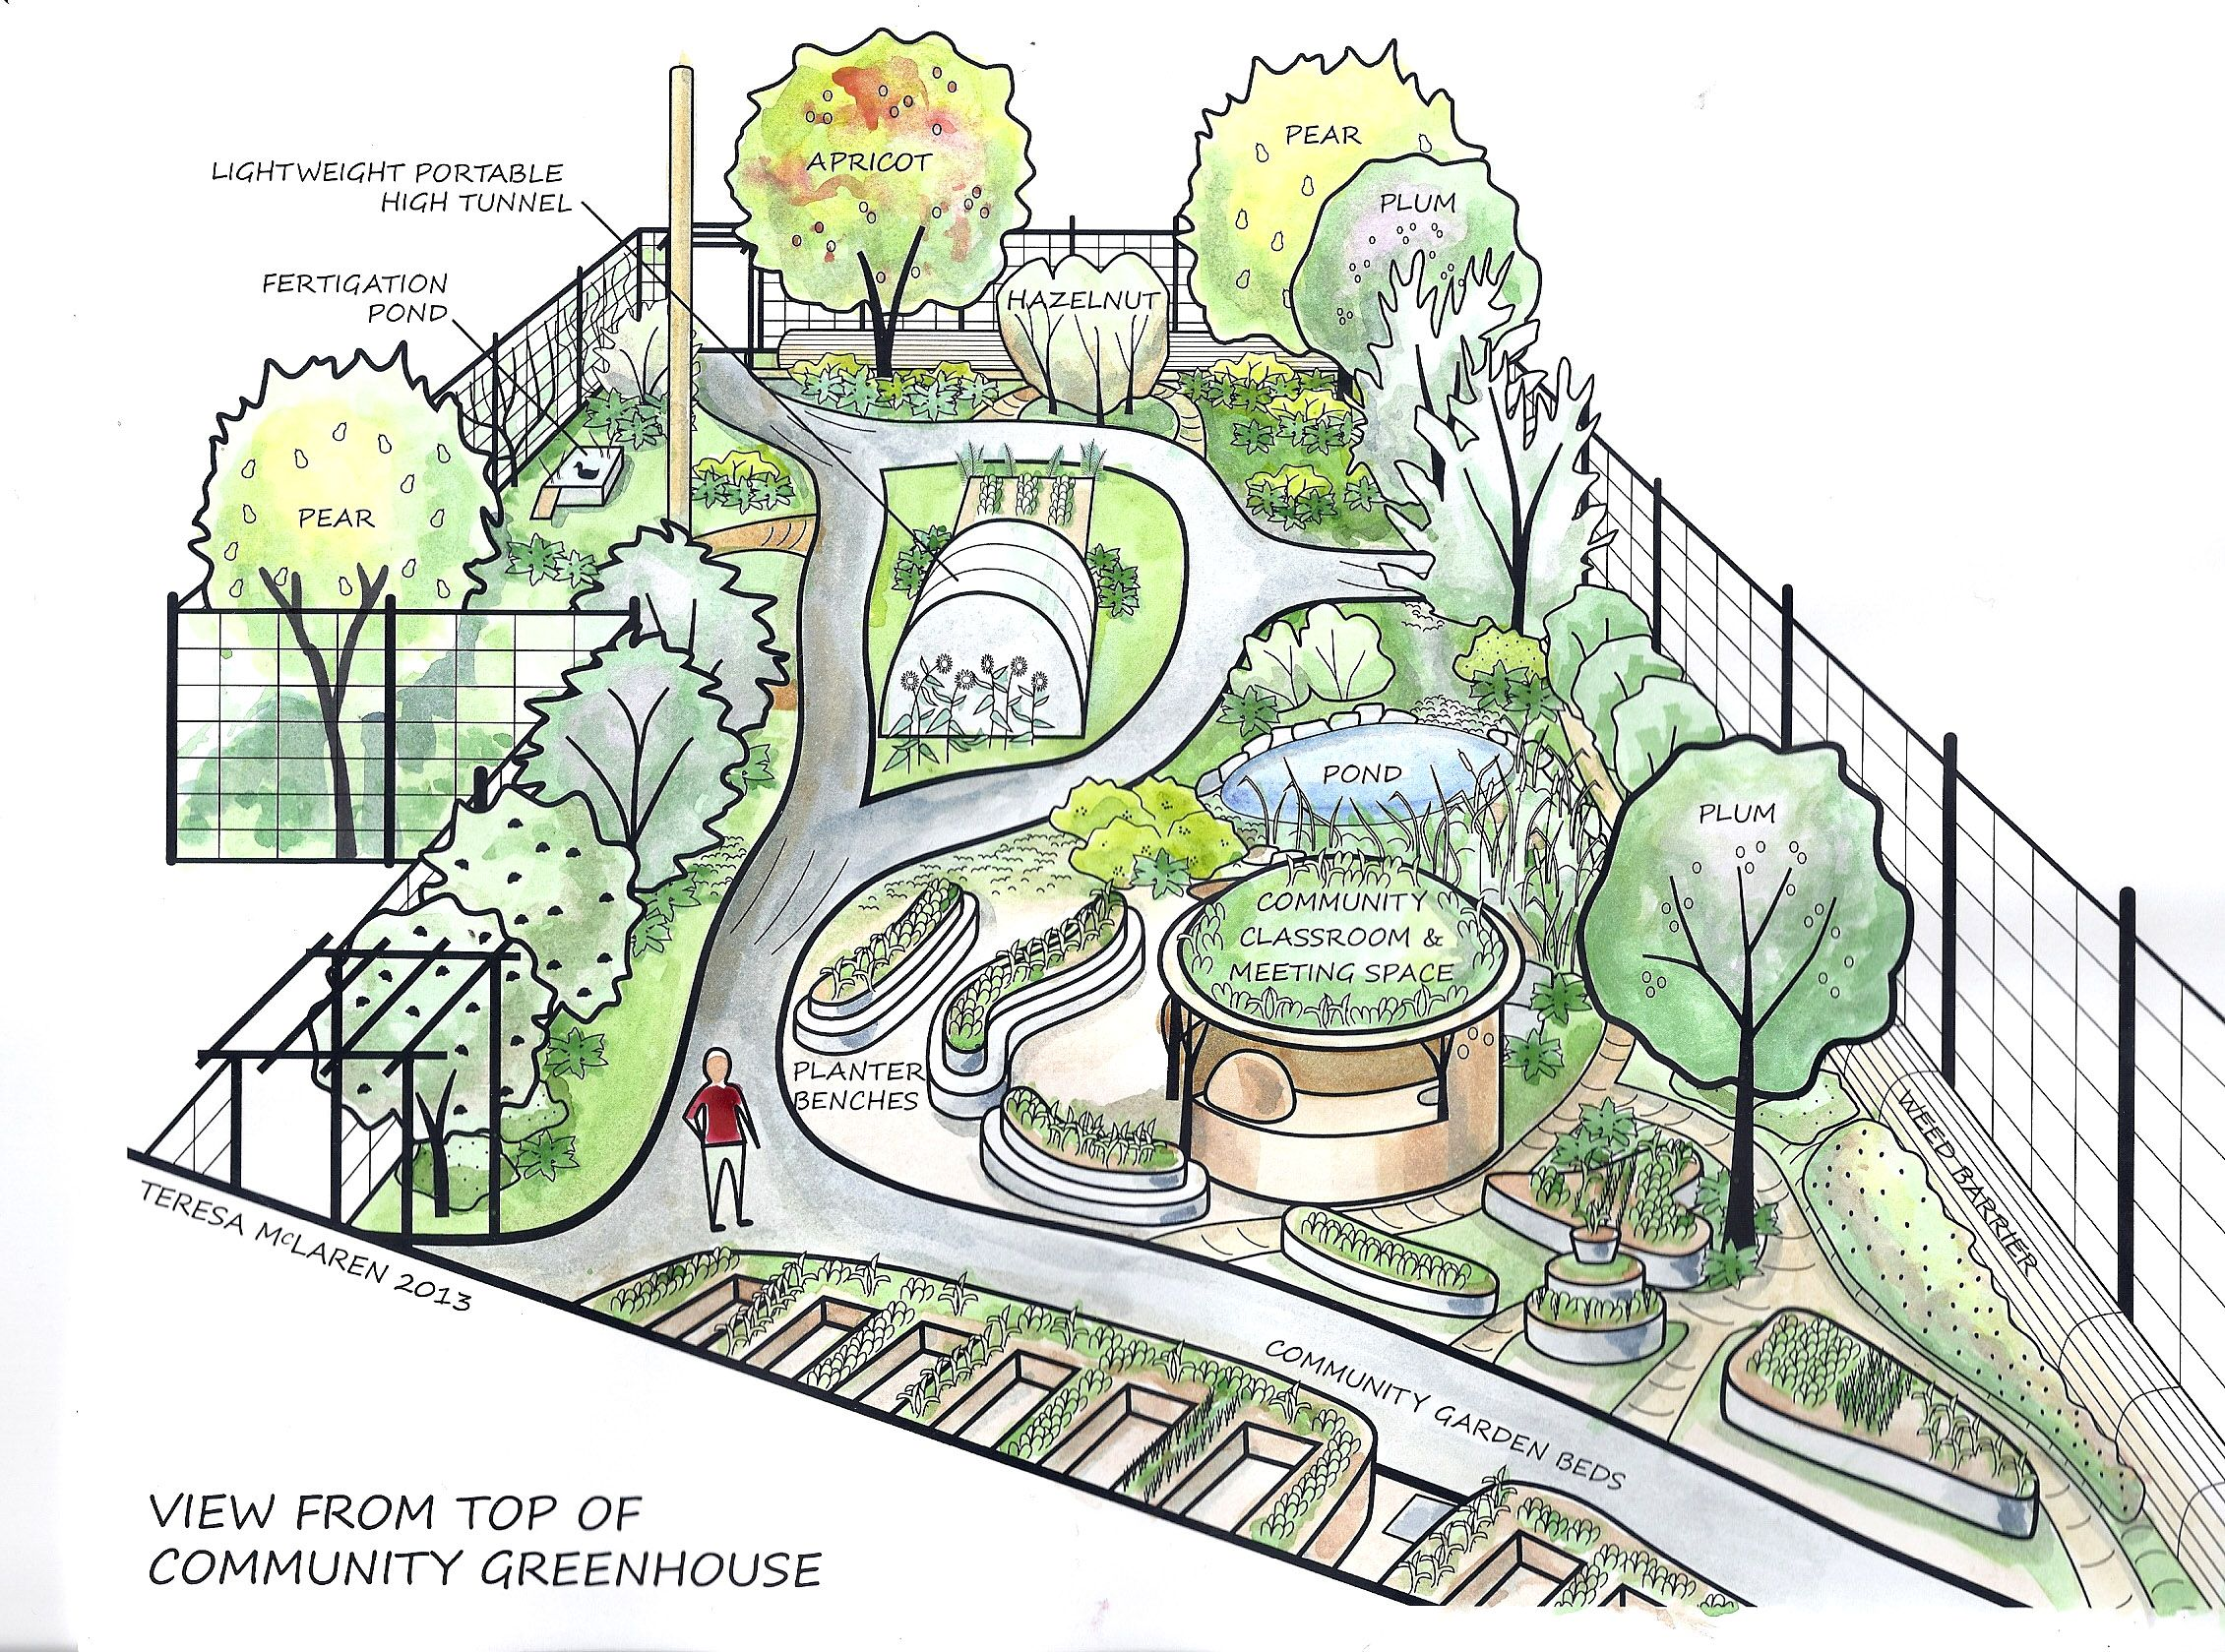 Community Garden Ideas community garden Visualization Of Groundswell Permaculture Food Forest And Community Garden Design By Verge Permaculture Inc Watercolor